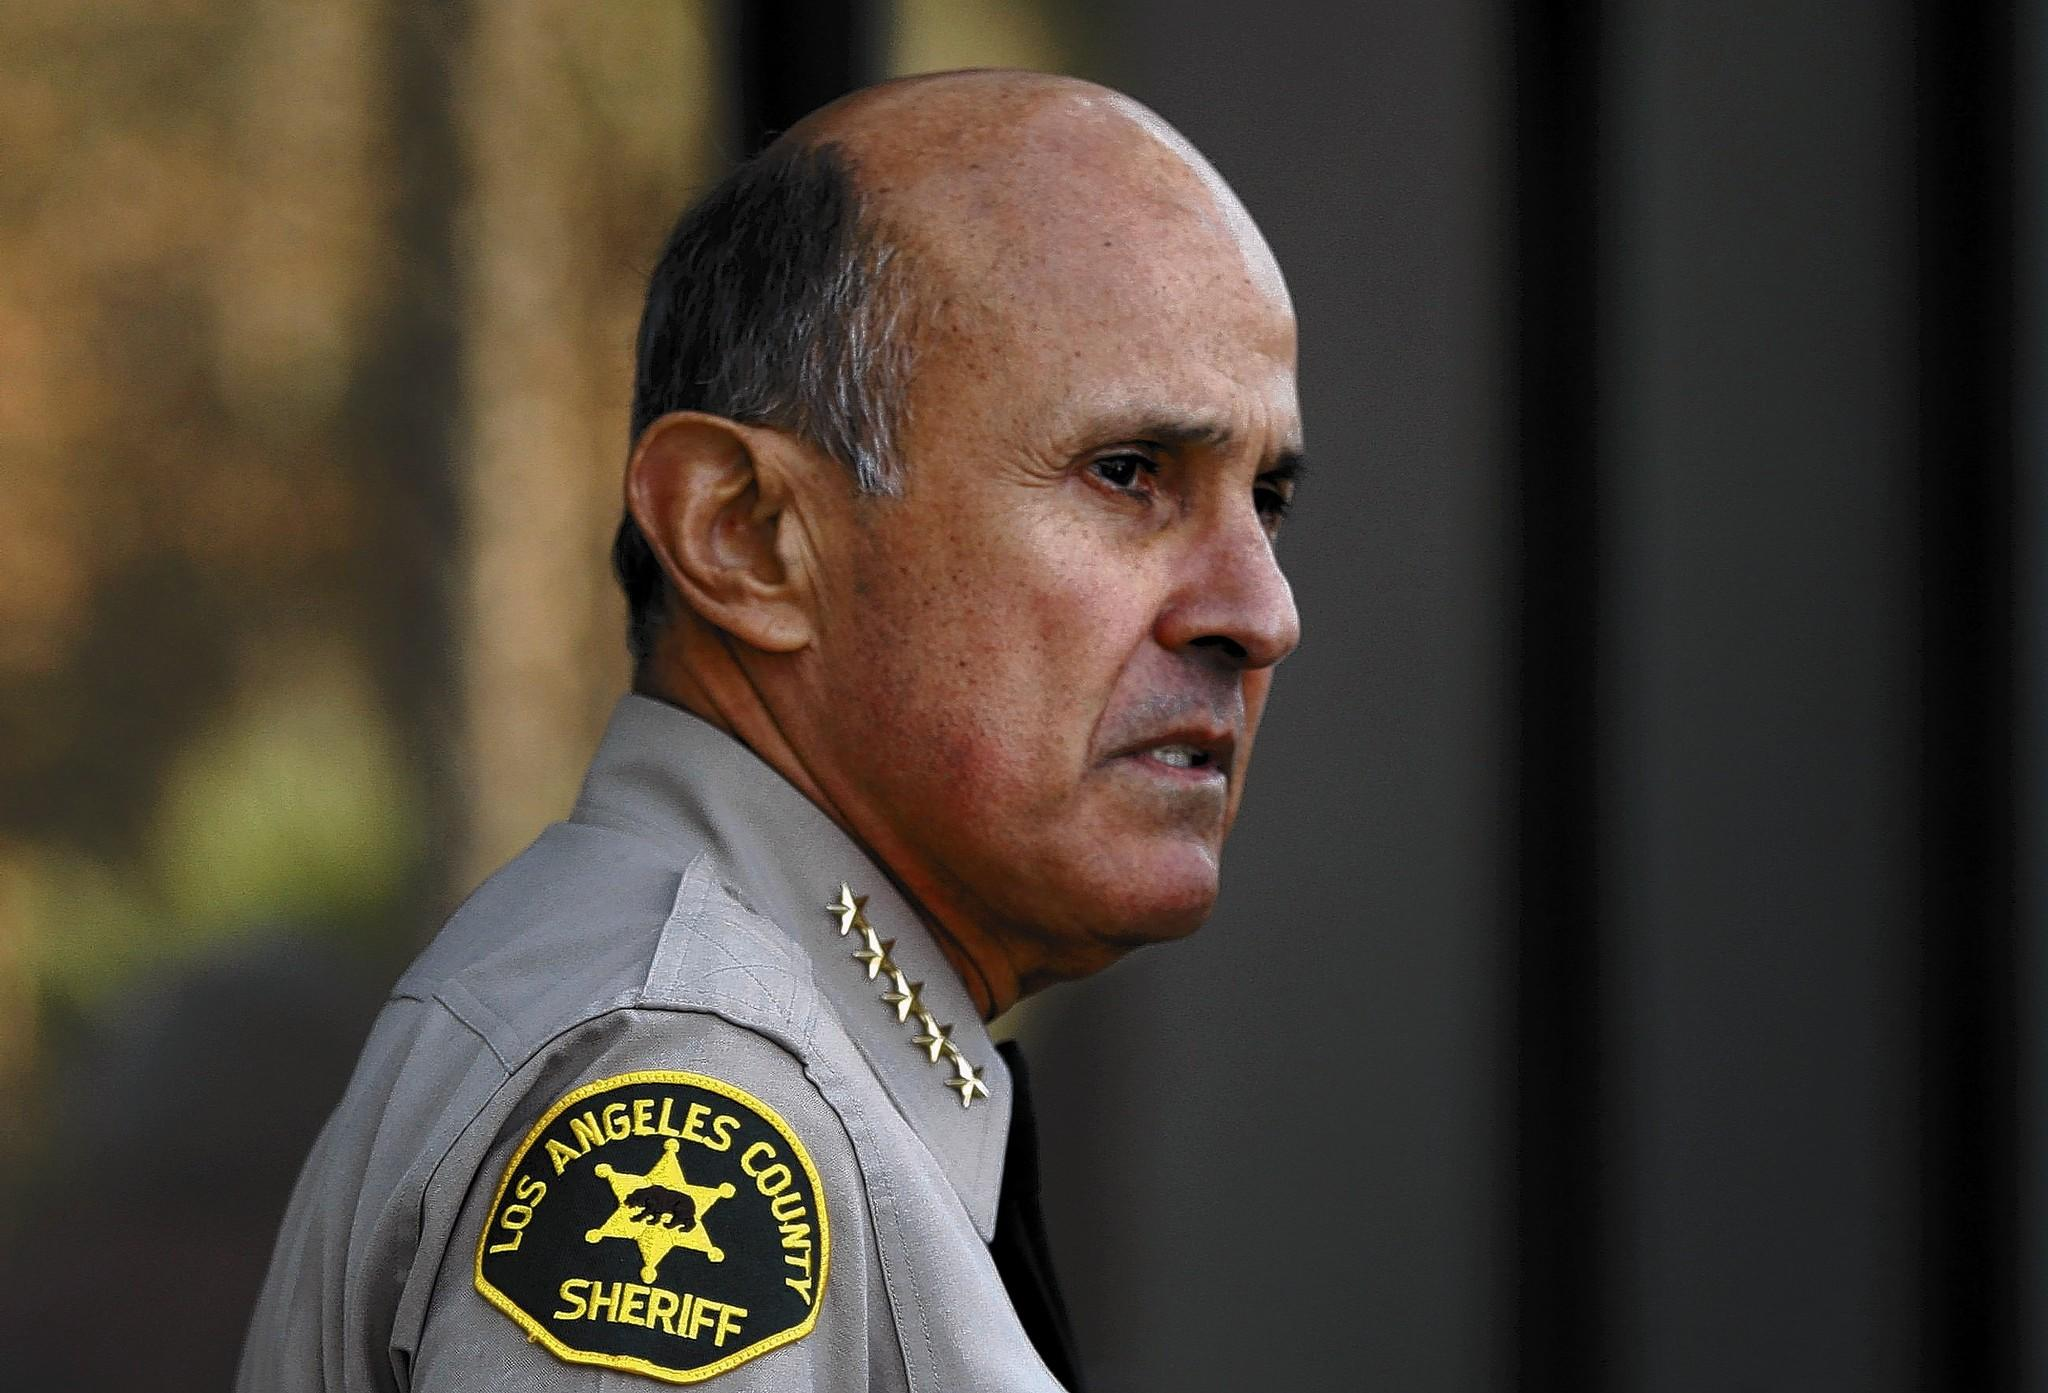 L.A. County Sheriff Lee Baca, seen here speaking to reporters last month, announced his resignation Tuesday. Baca had planned on running for a fifth term as sheriff.